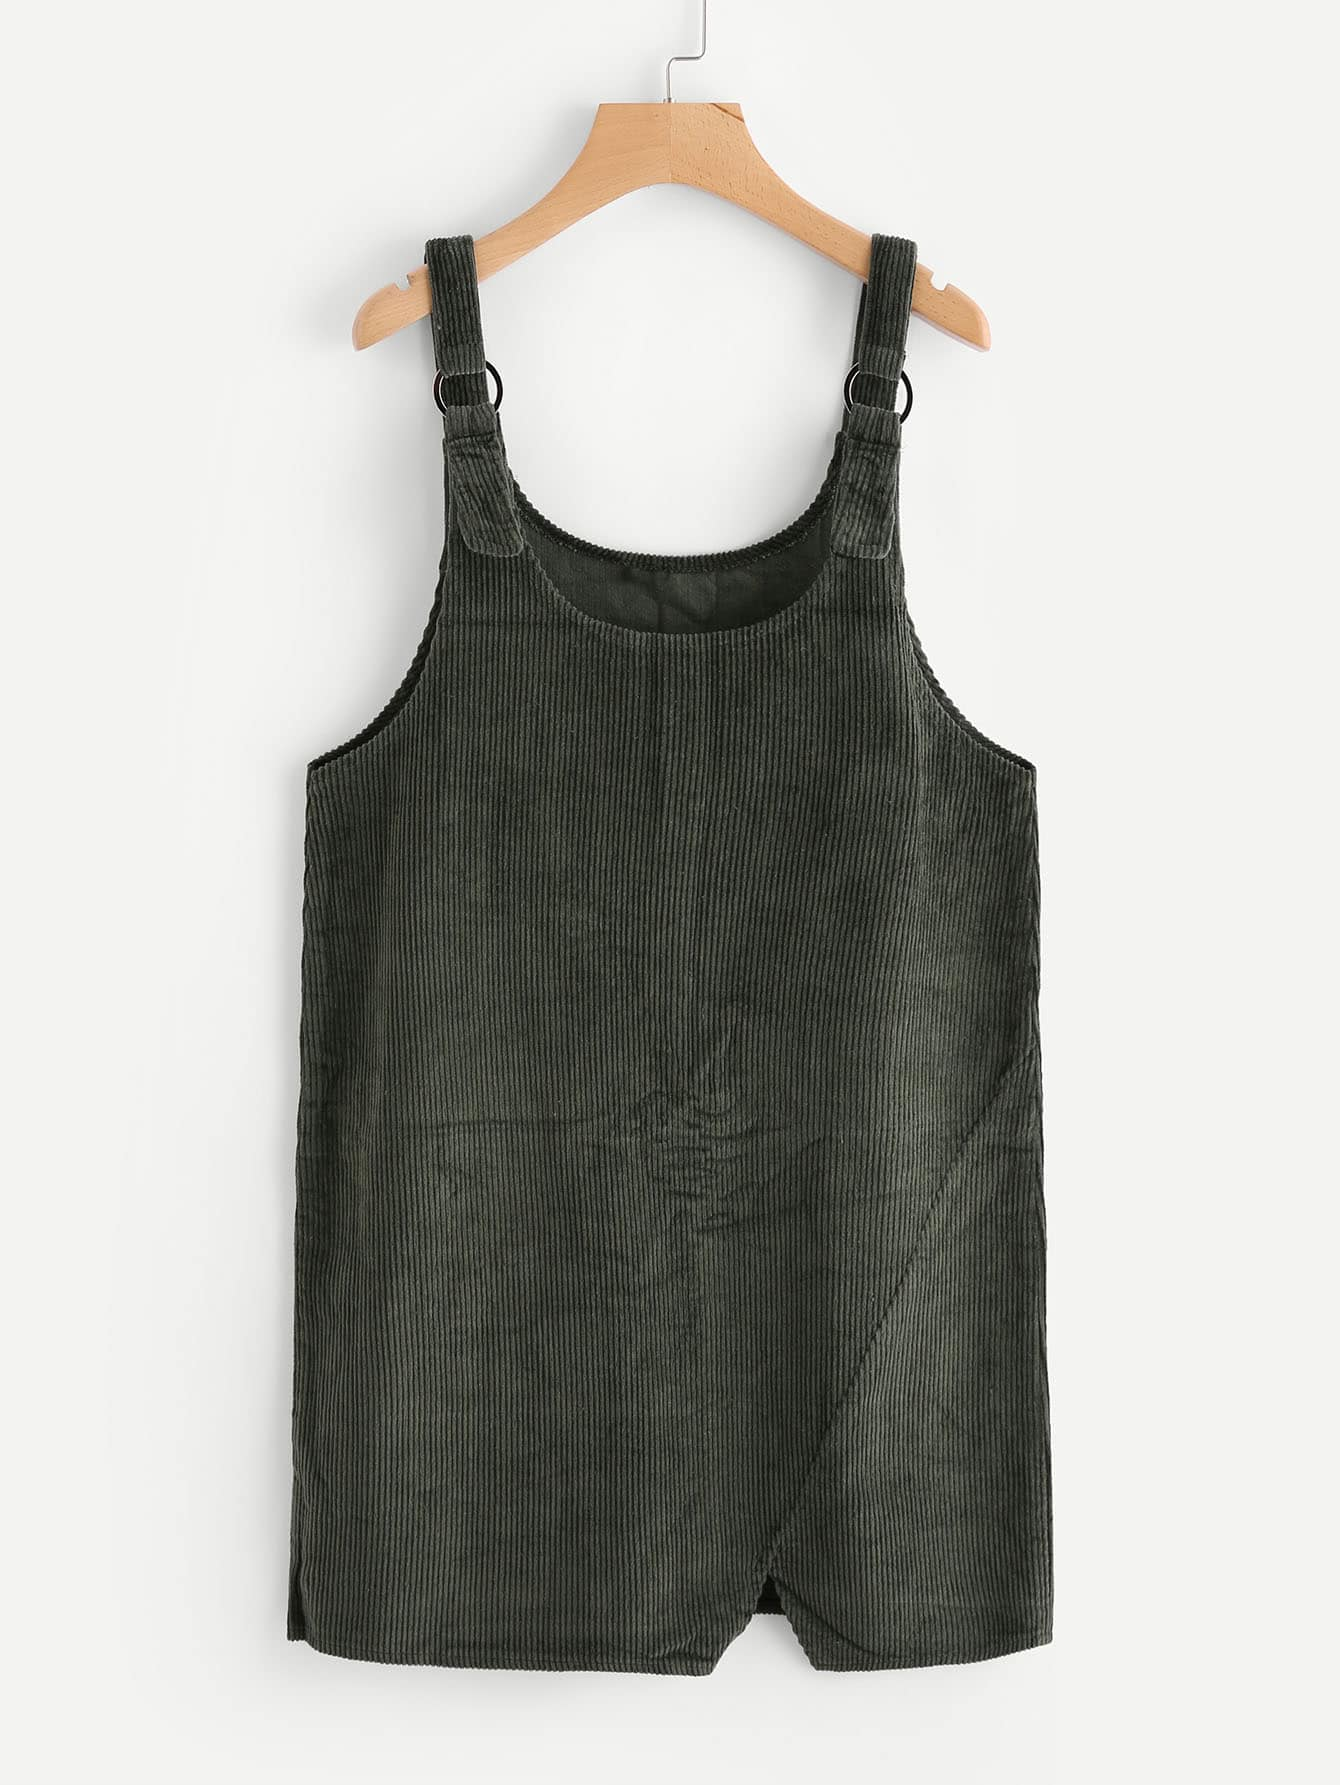 Cut Out Hem Ribbed Overall dress170926030